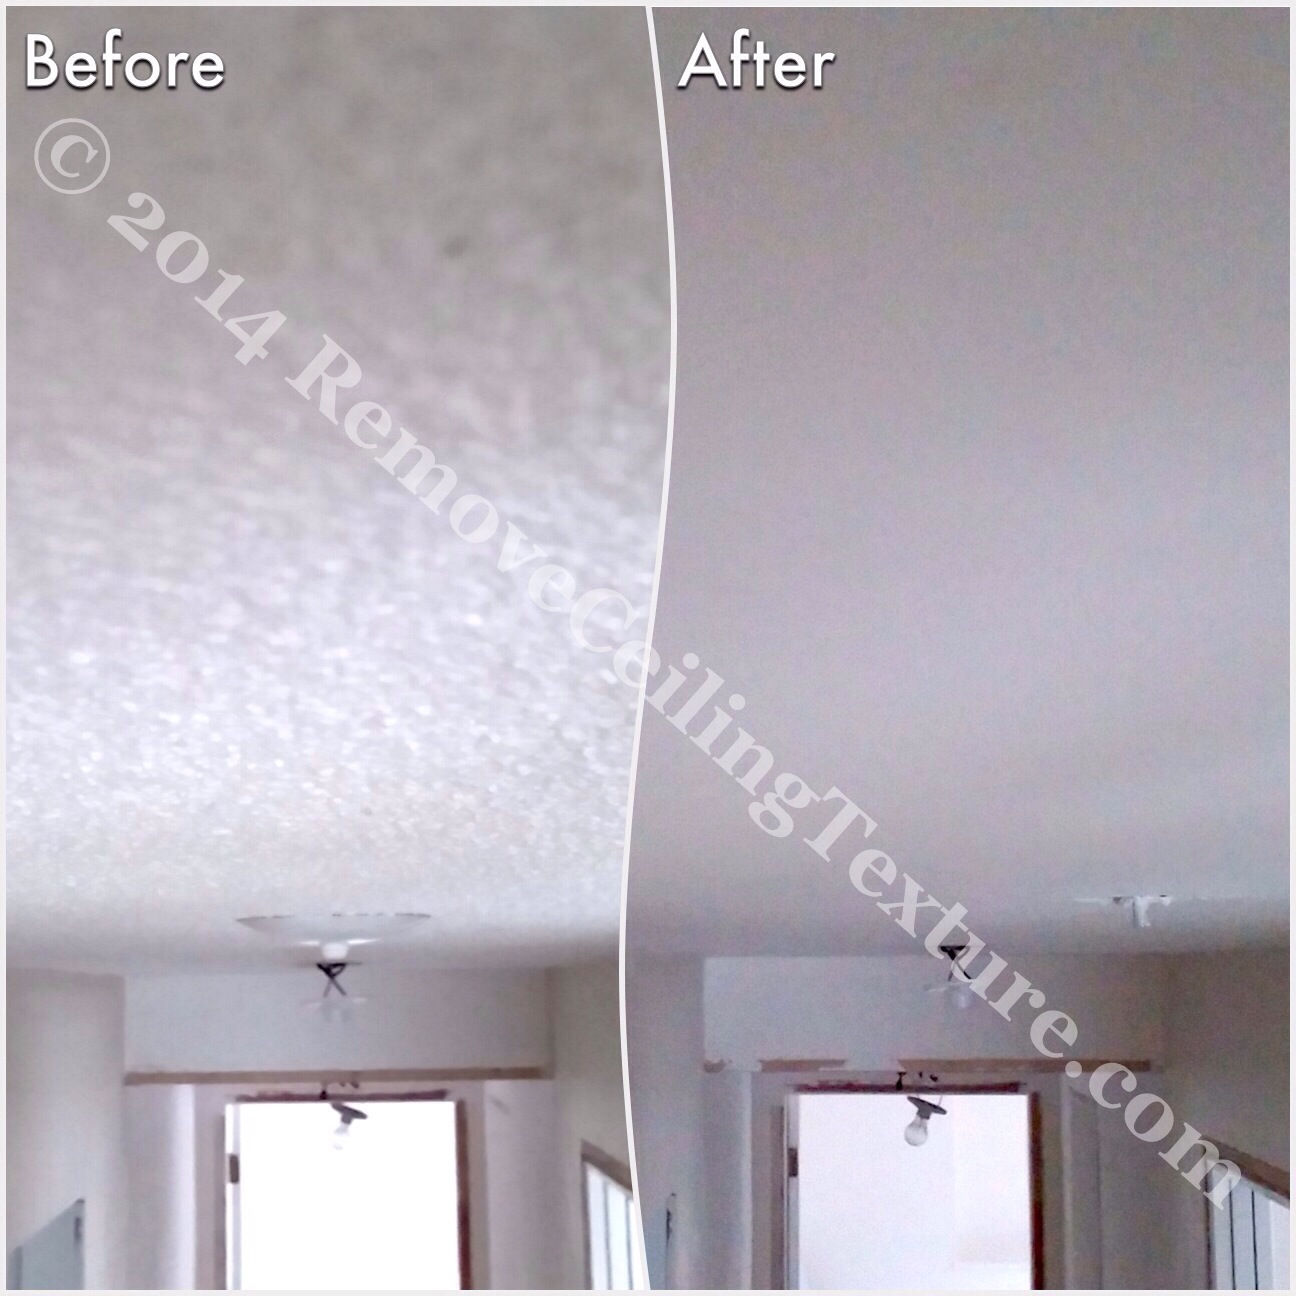 How Much Does It Cost To Remove Popcorn Ceiling Asbestos